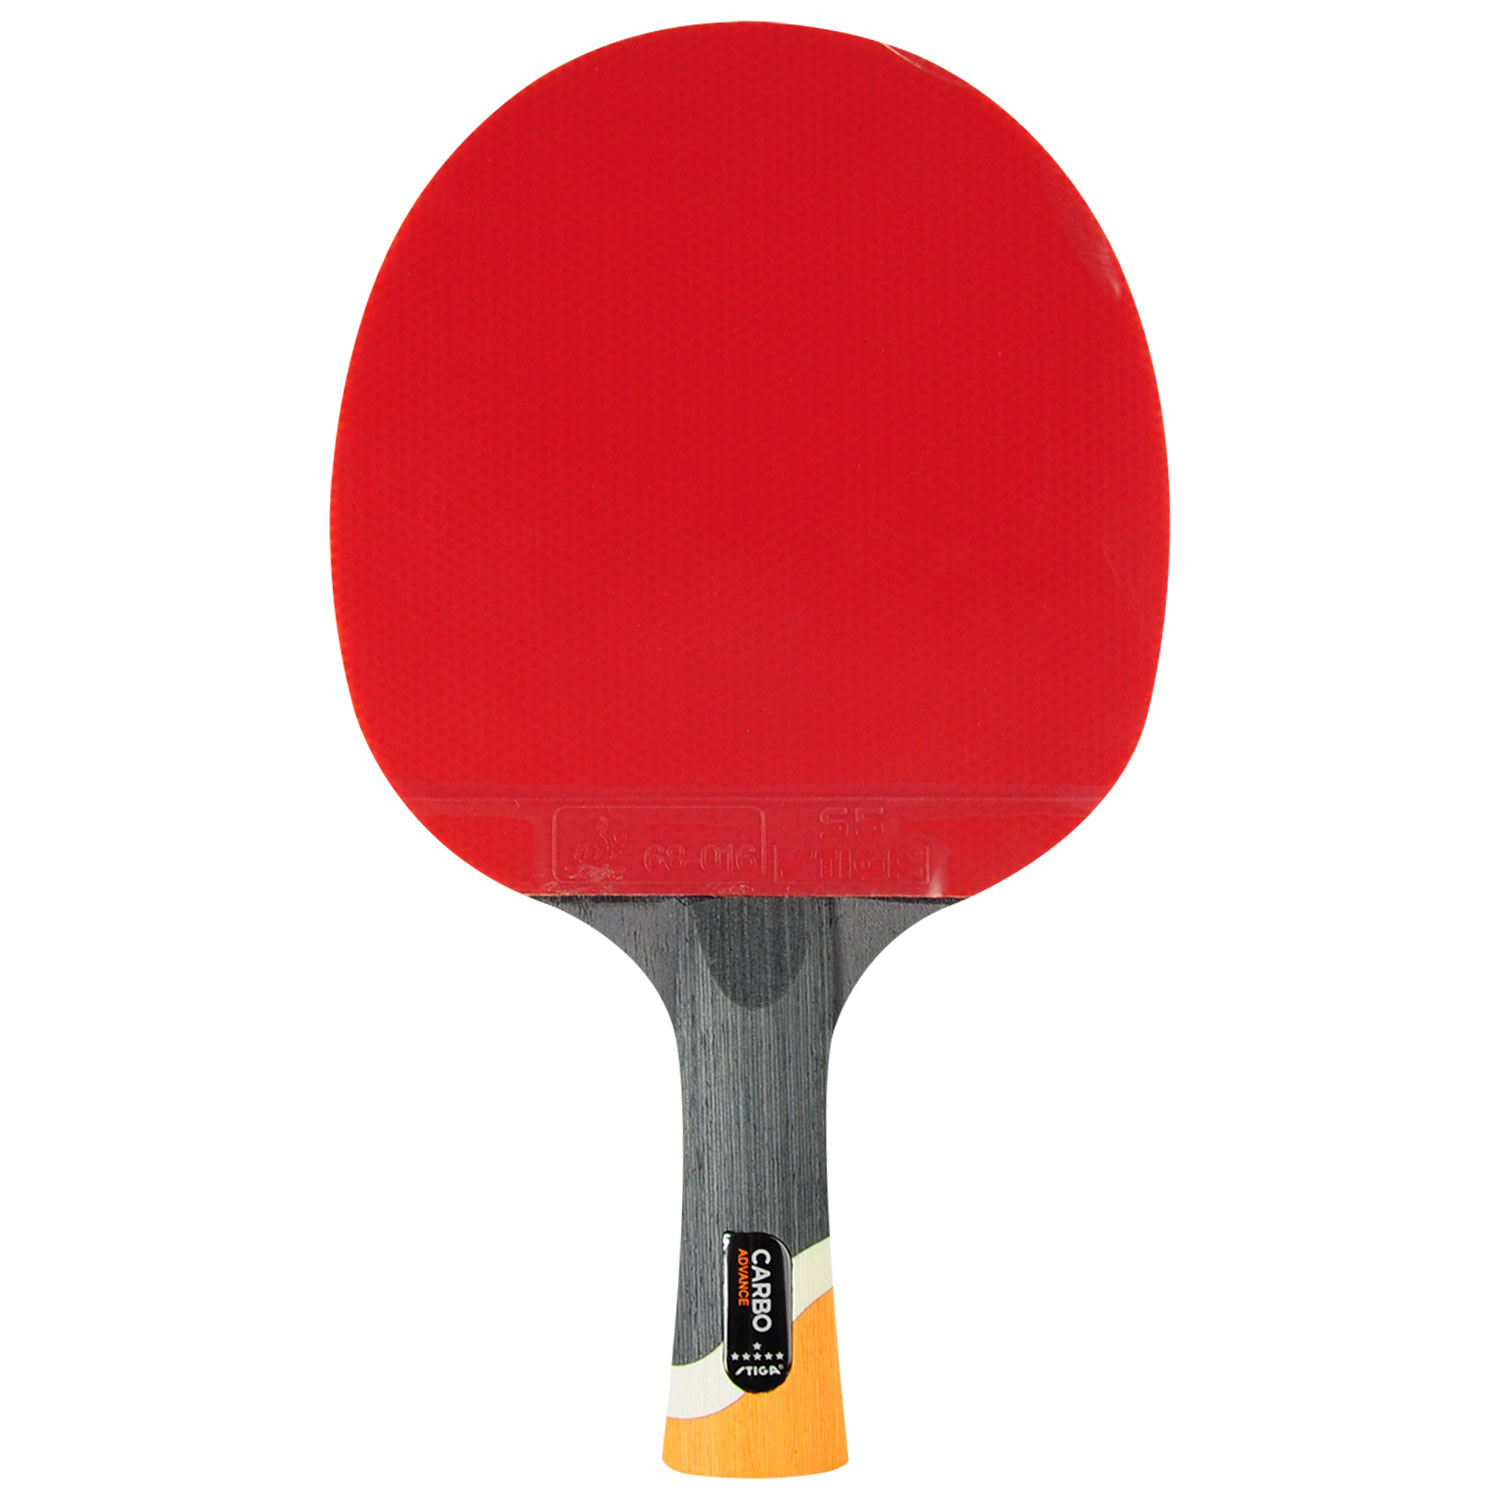 Image 4 - STIGA professional Carbon 6 STARS rakieta do tenisa stołowego do rakiet ofensywnych rakieta sportowa Ping Pong Raquete pryszcze wtable tennis rackettable tennisrackets for table tennis -